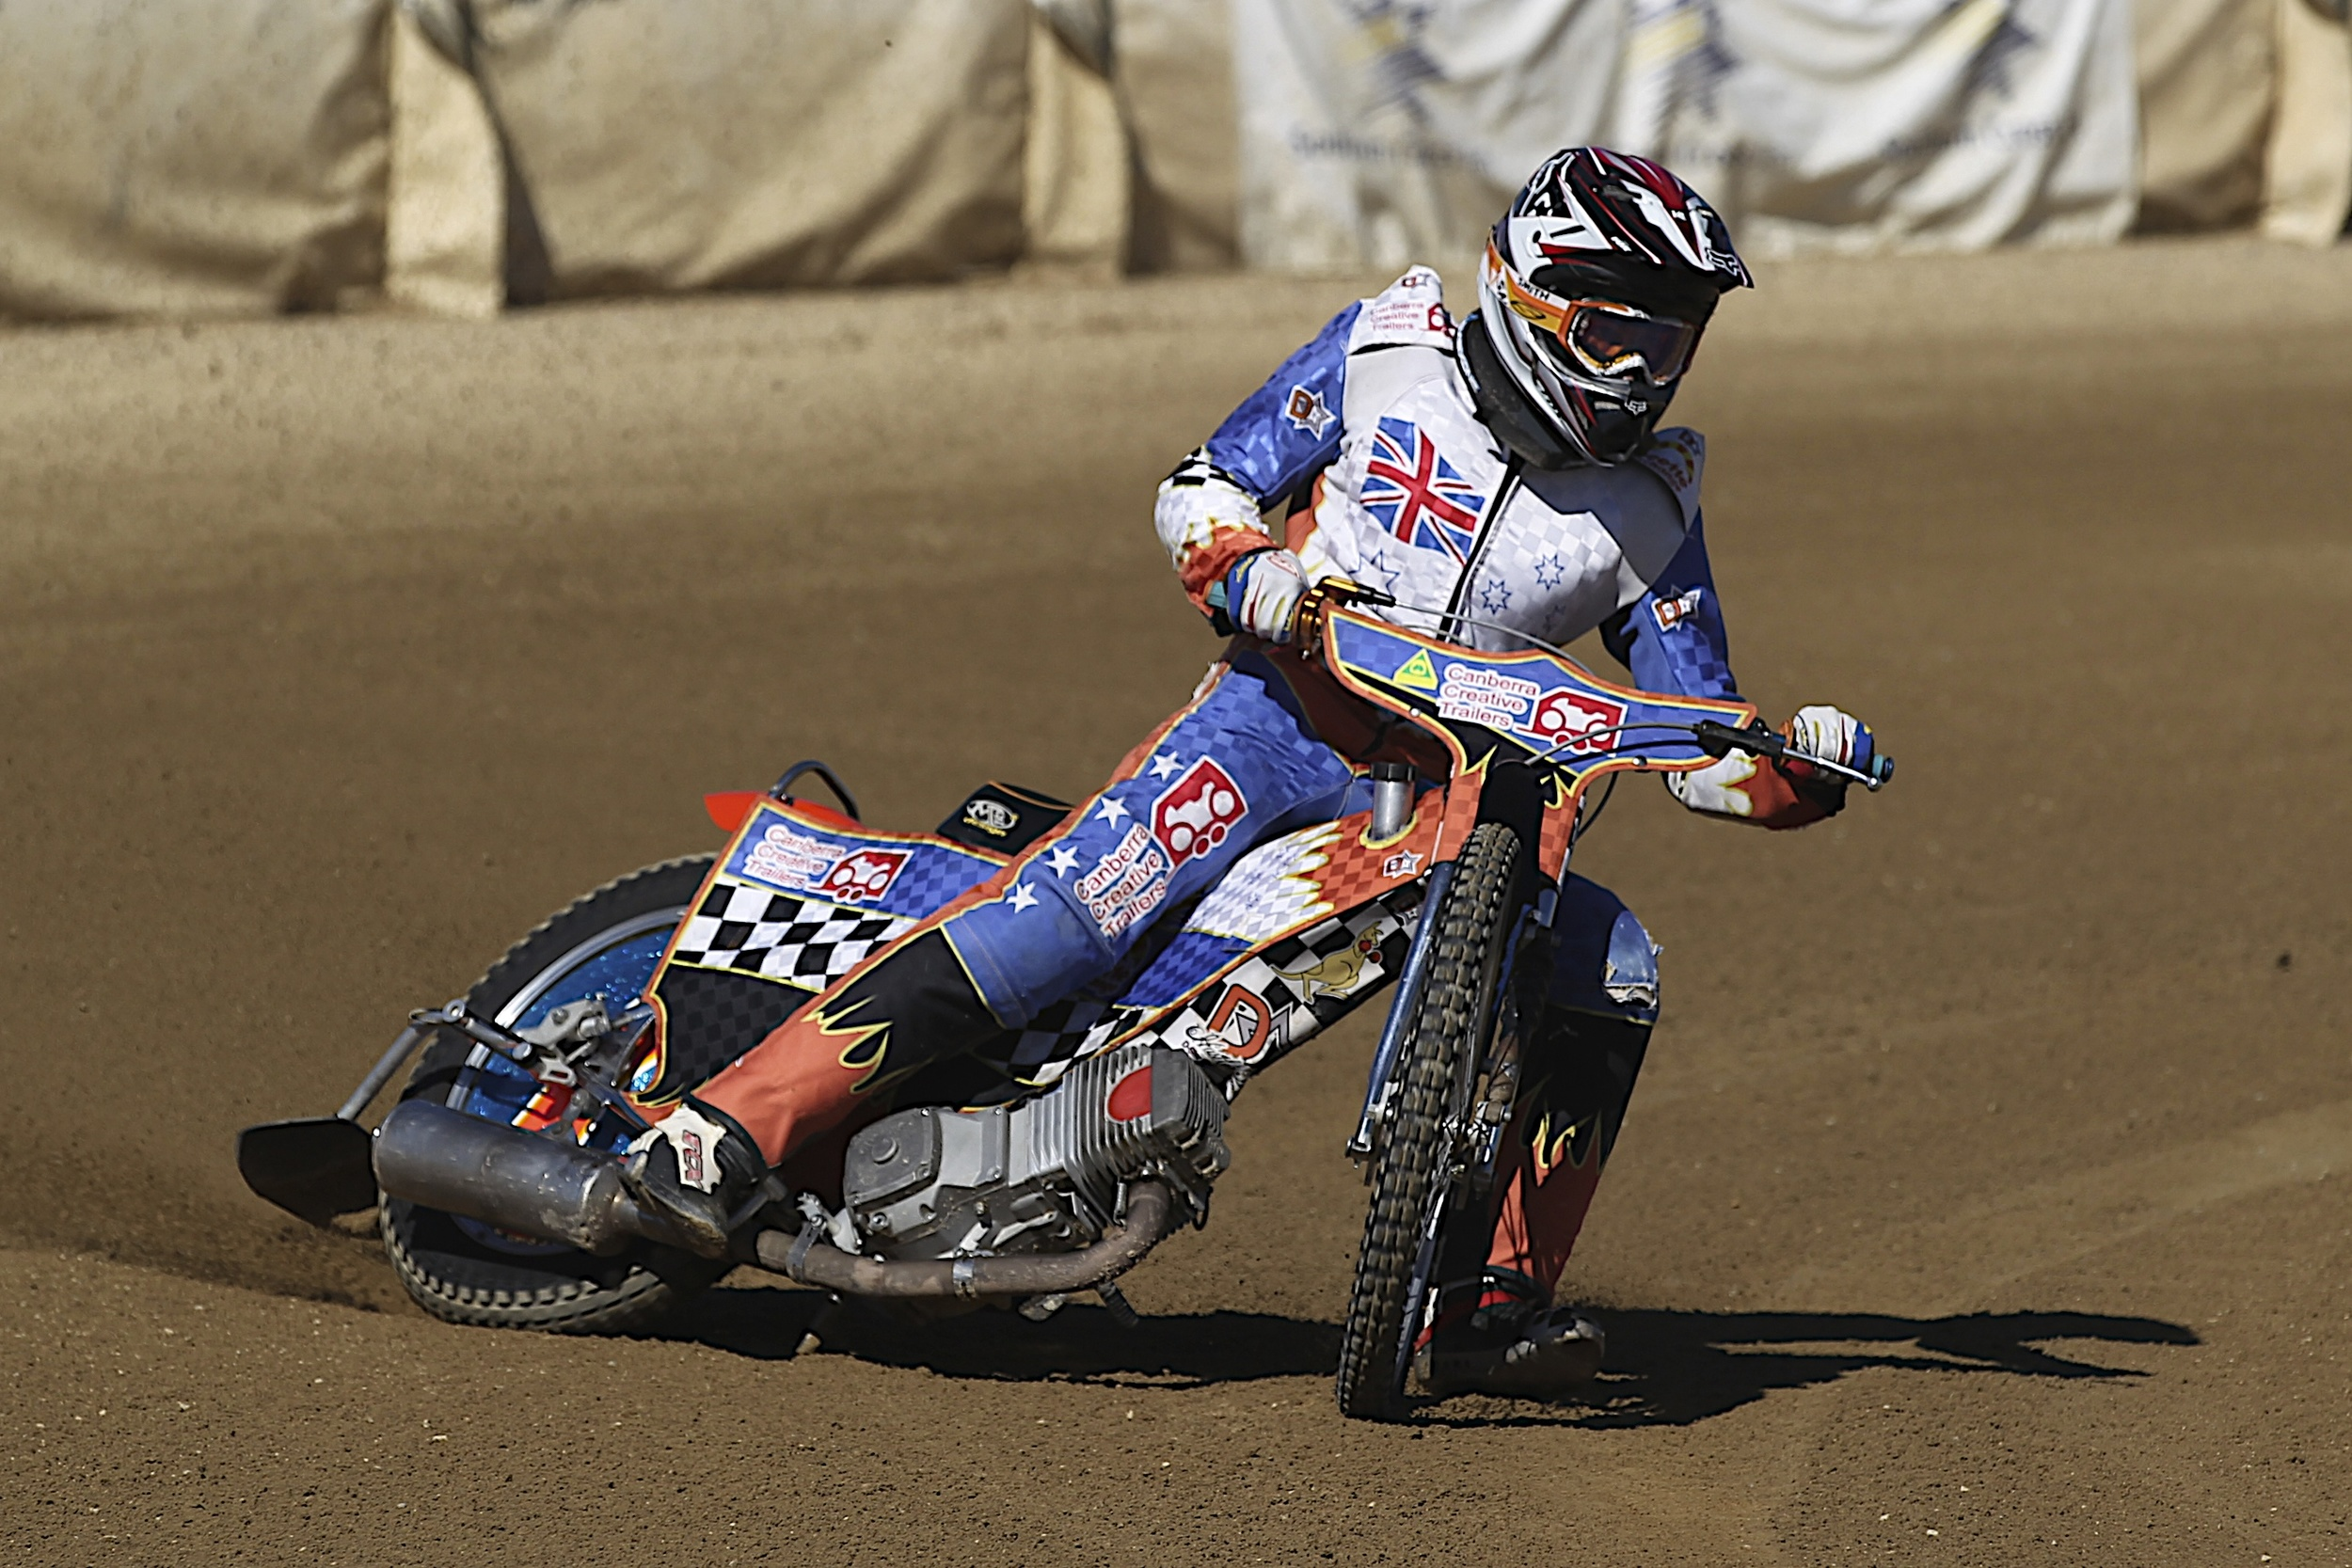 James Dimmock is wasting no time in chasing his New Year's Resolutions, attempting to qualify for the Australian Speedway Championships on New Year's Day